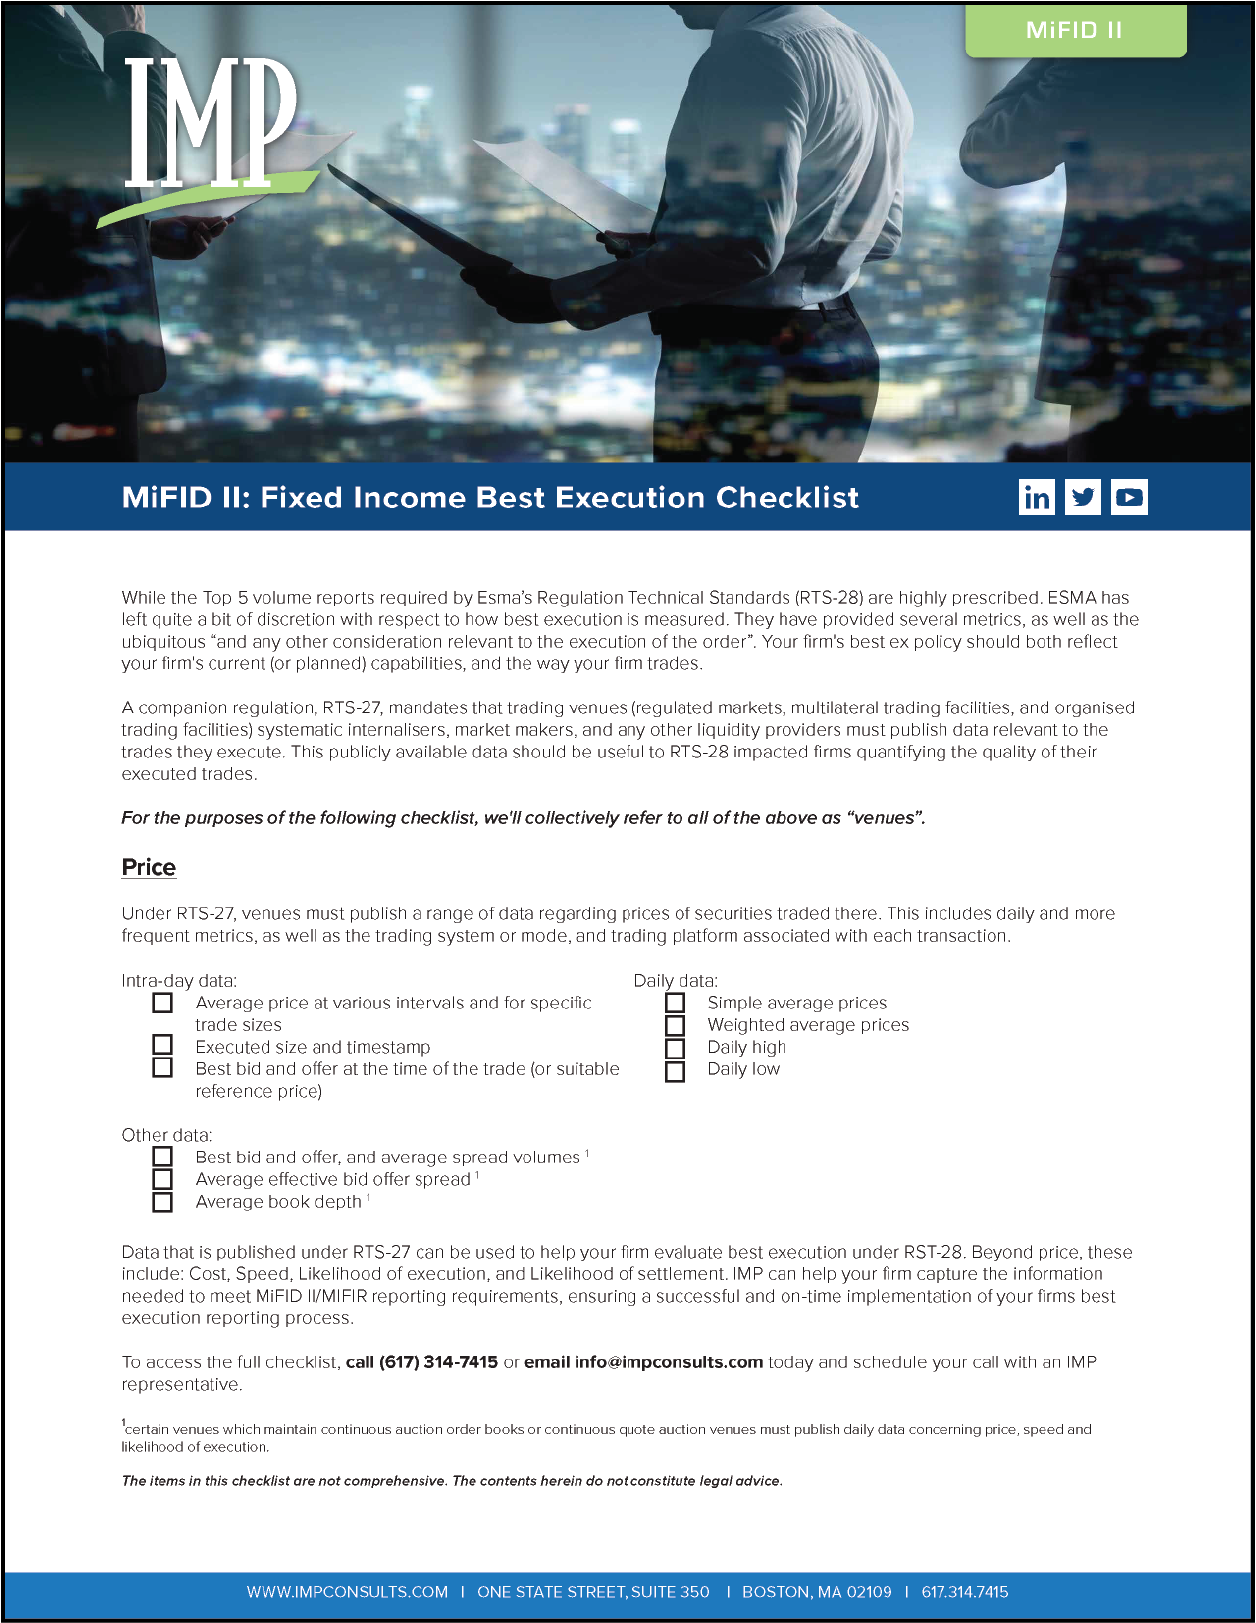 Download the Fixed Income Best Execution Checklist